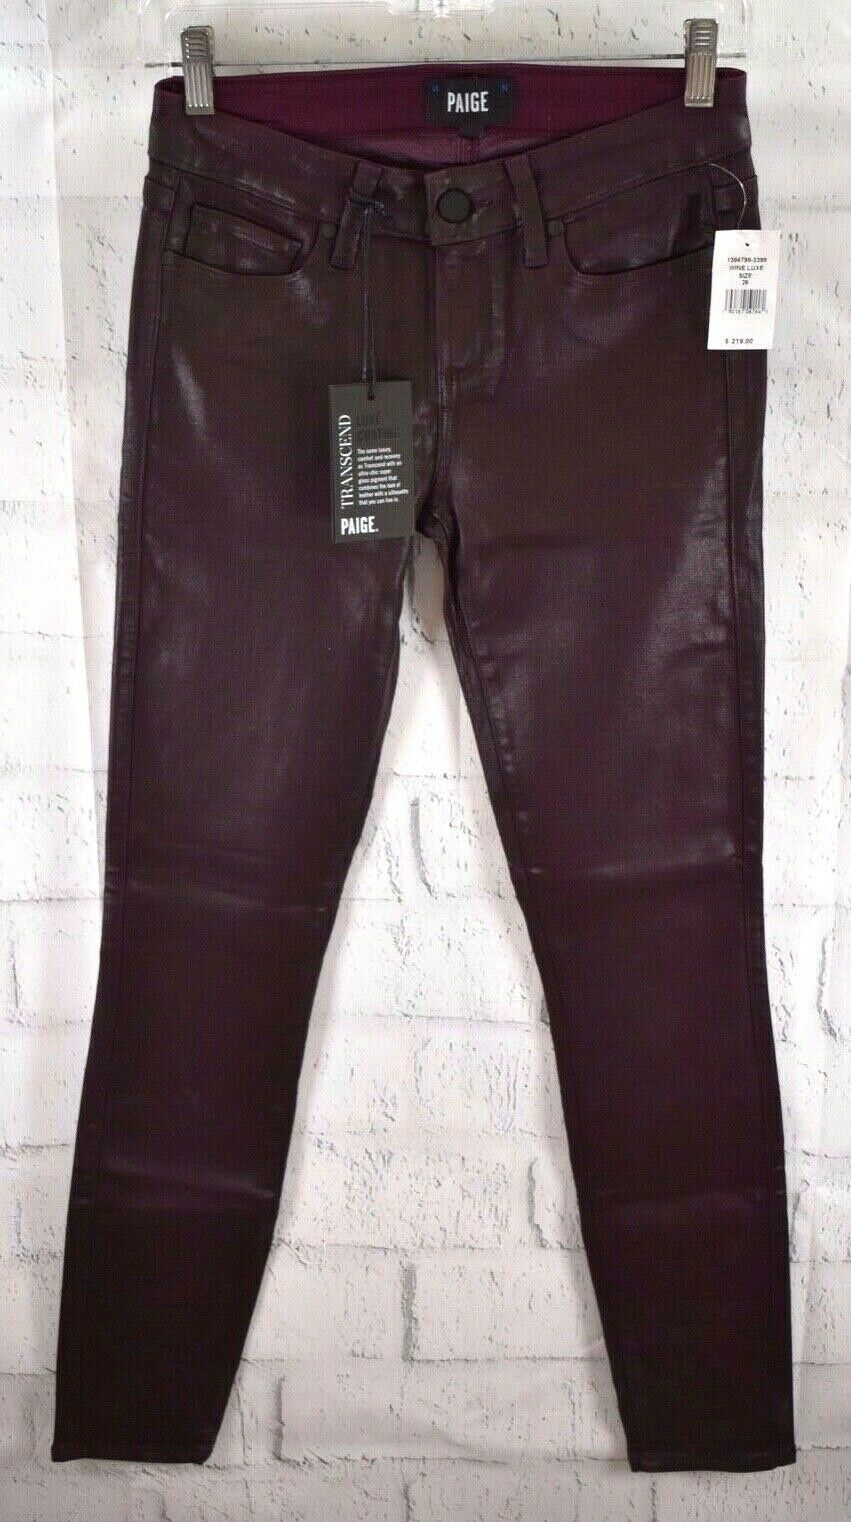 New Paige Verdugo Ultra Skinny Wine Luxe Coated Jeans Red Stretch Size 26 30 USA